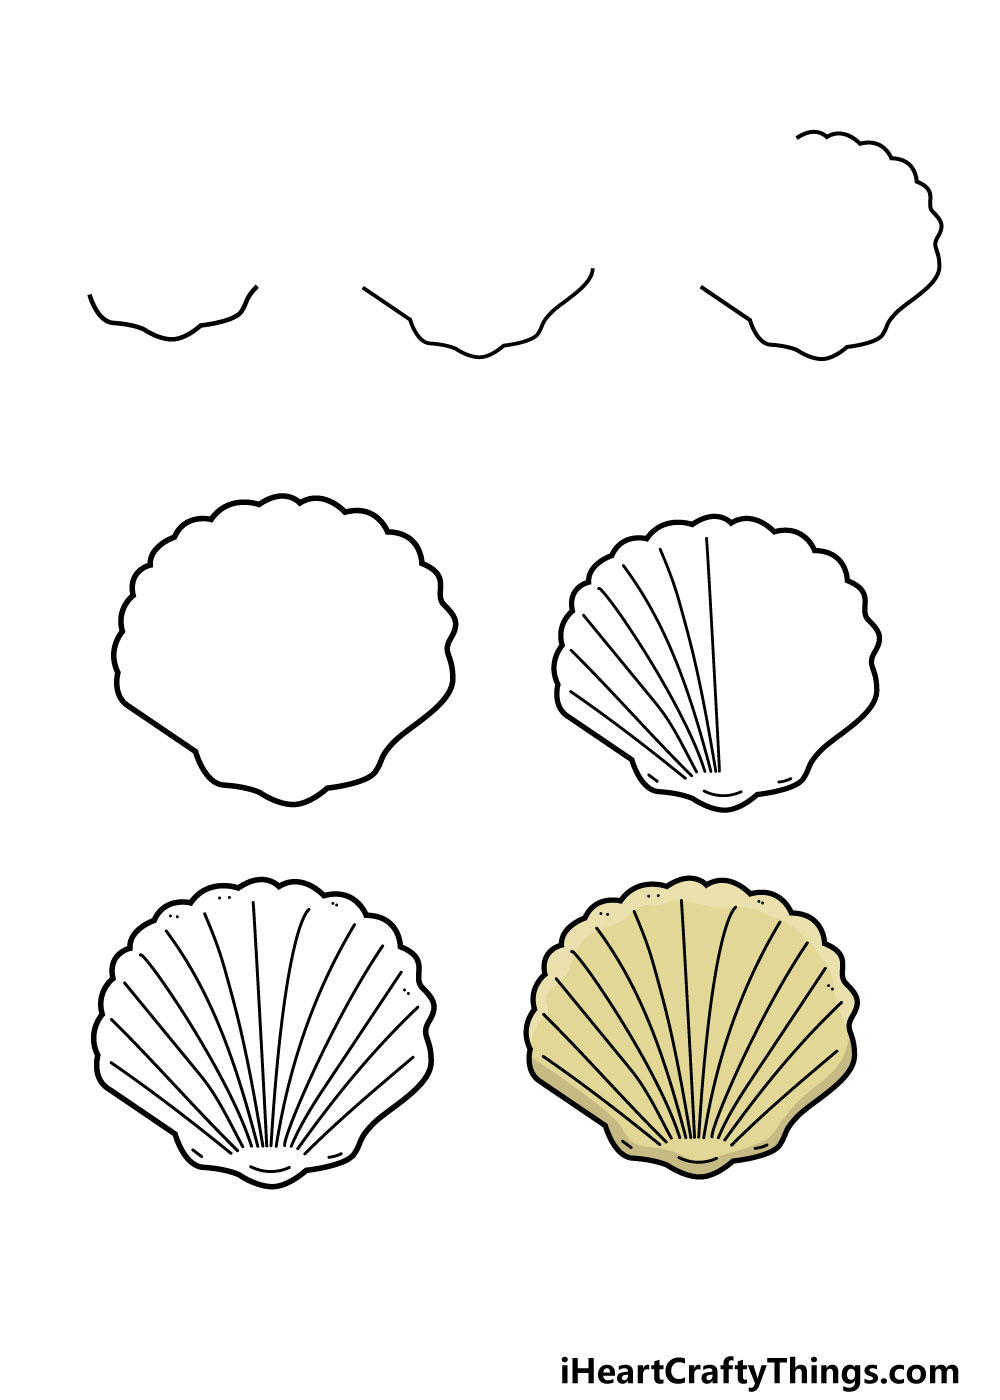 how to draw a shell in 7 steps